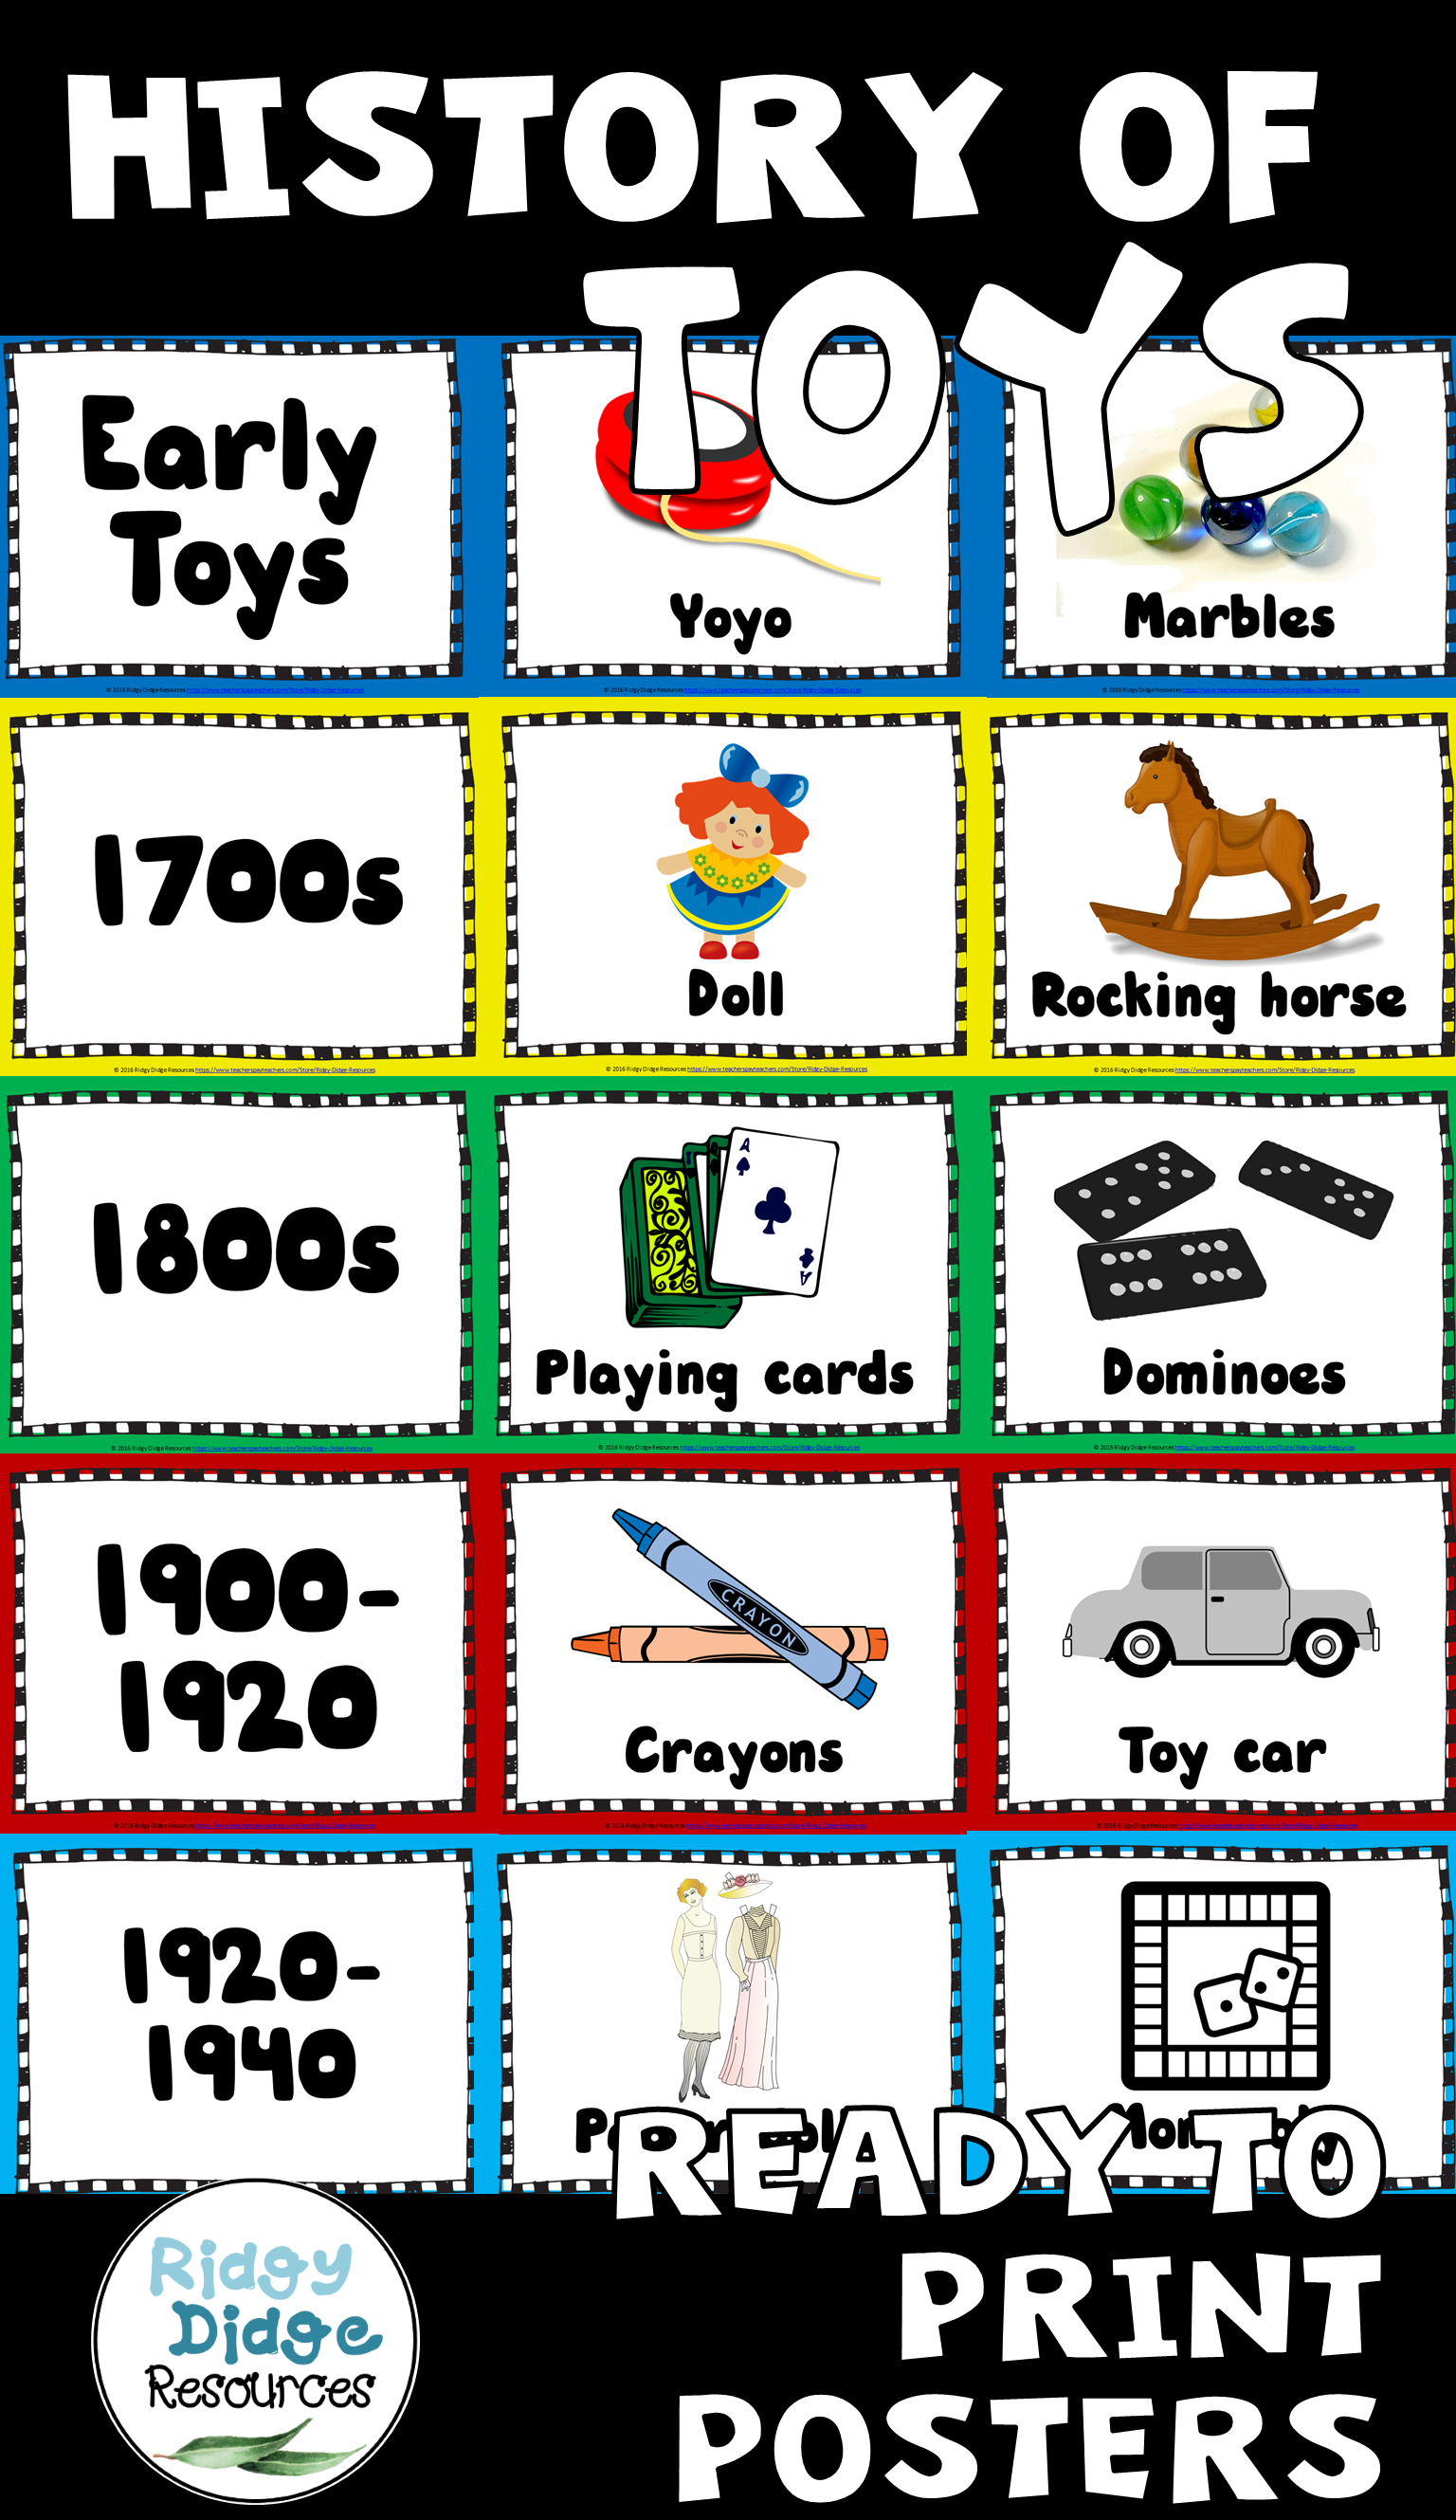 History Of Toys Timeline Posters With Images